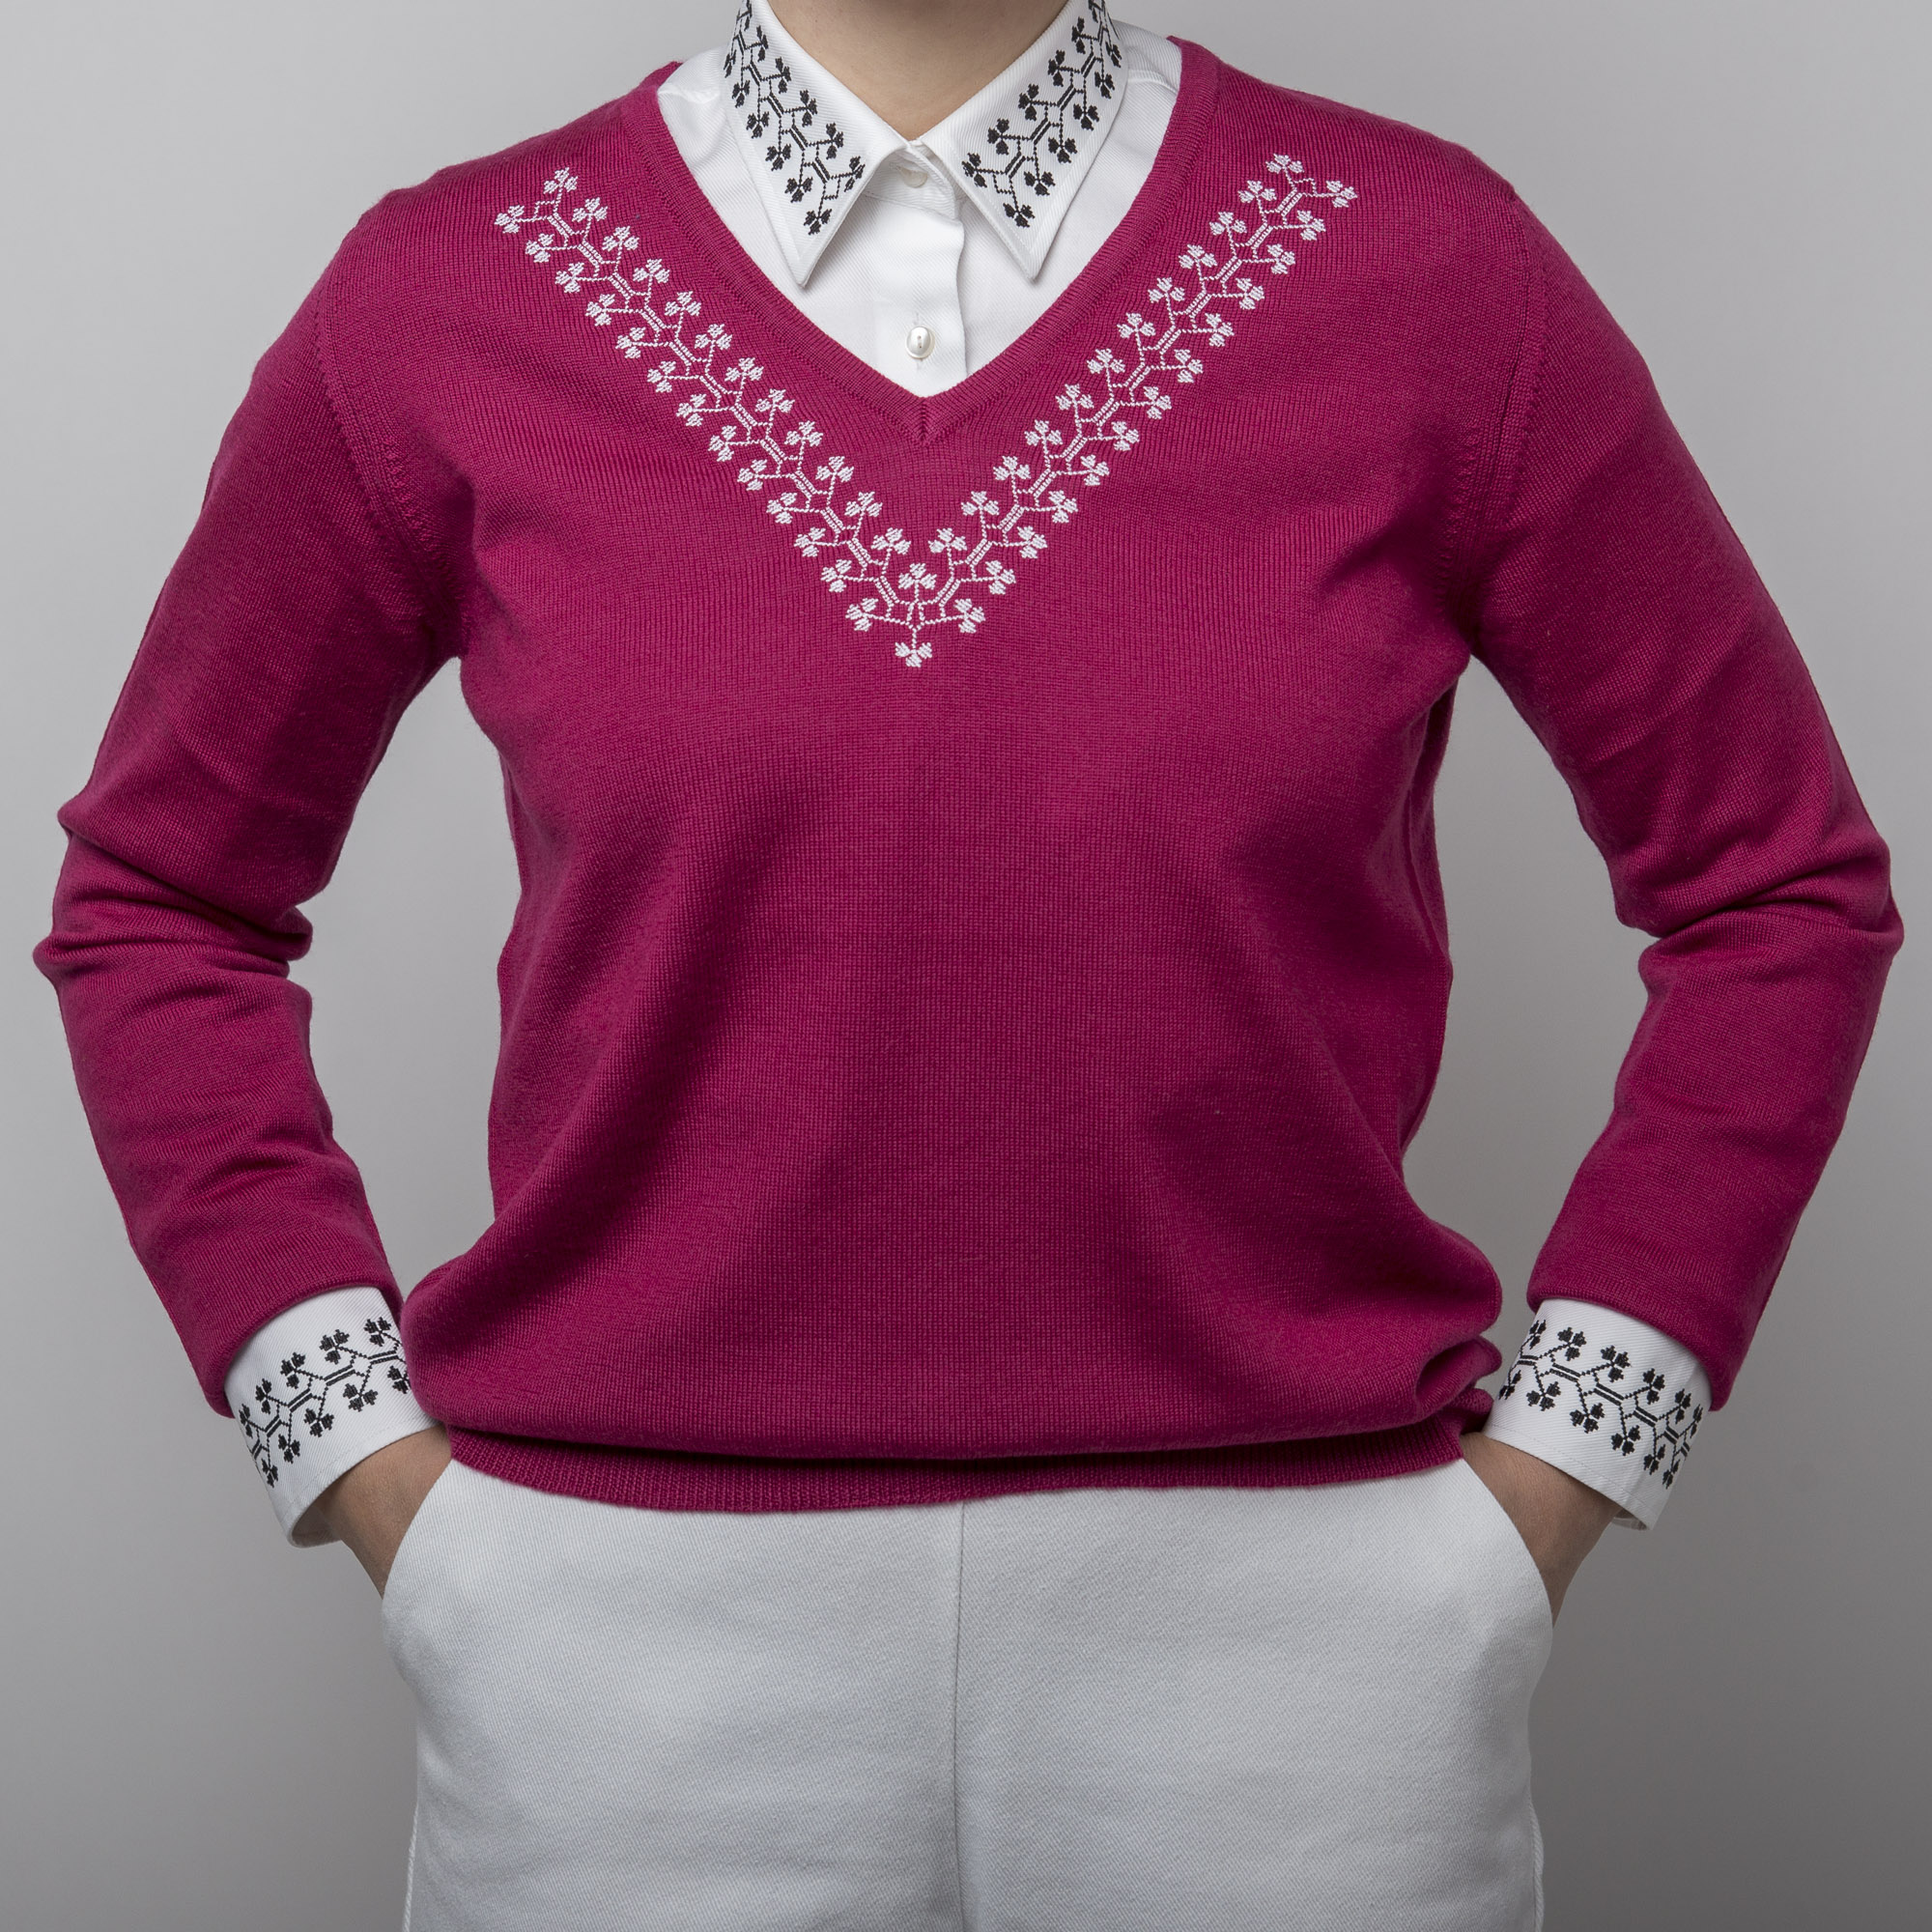 bordeaux knitwear sweater